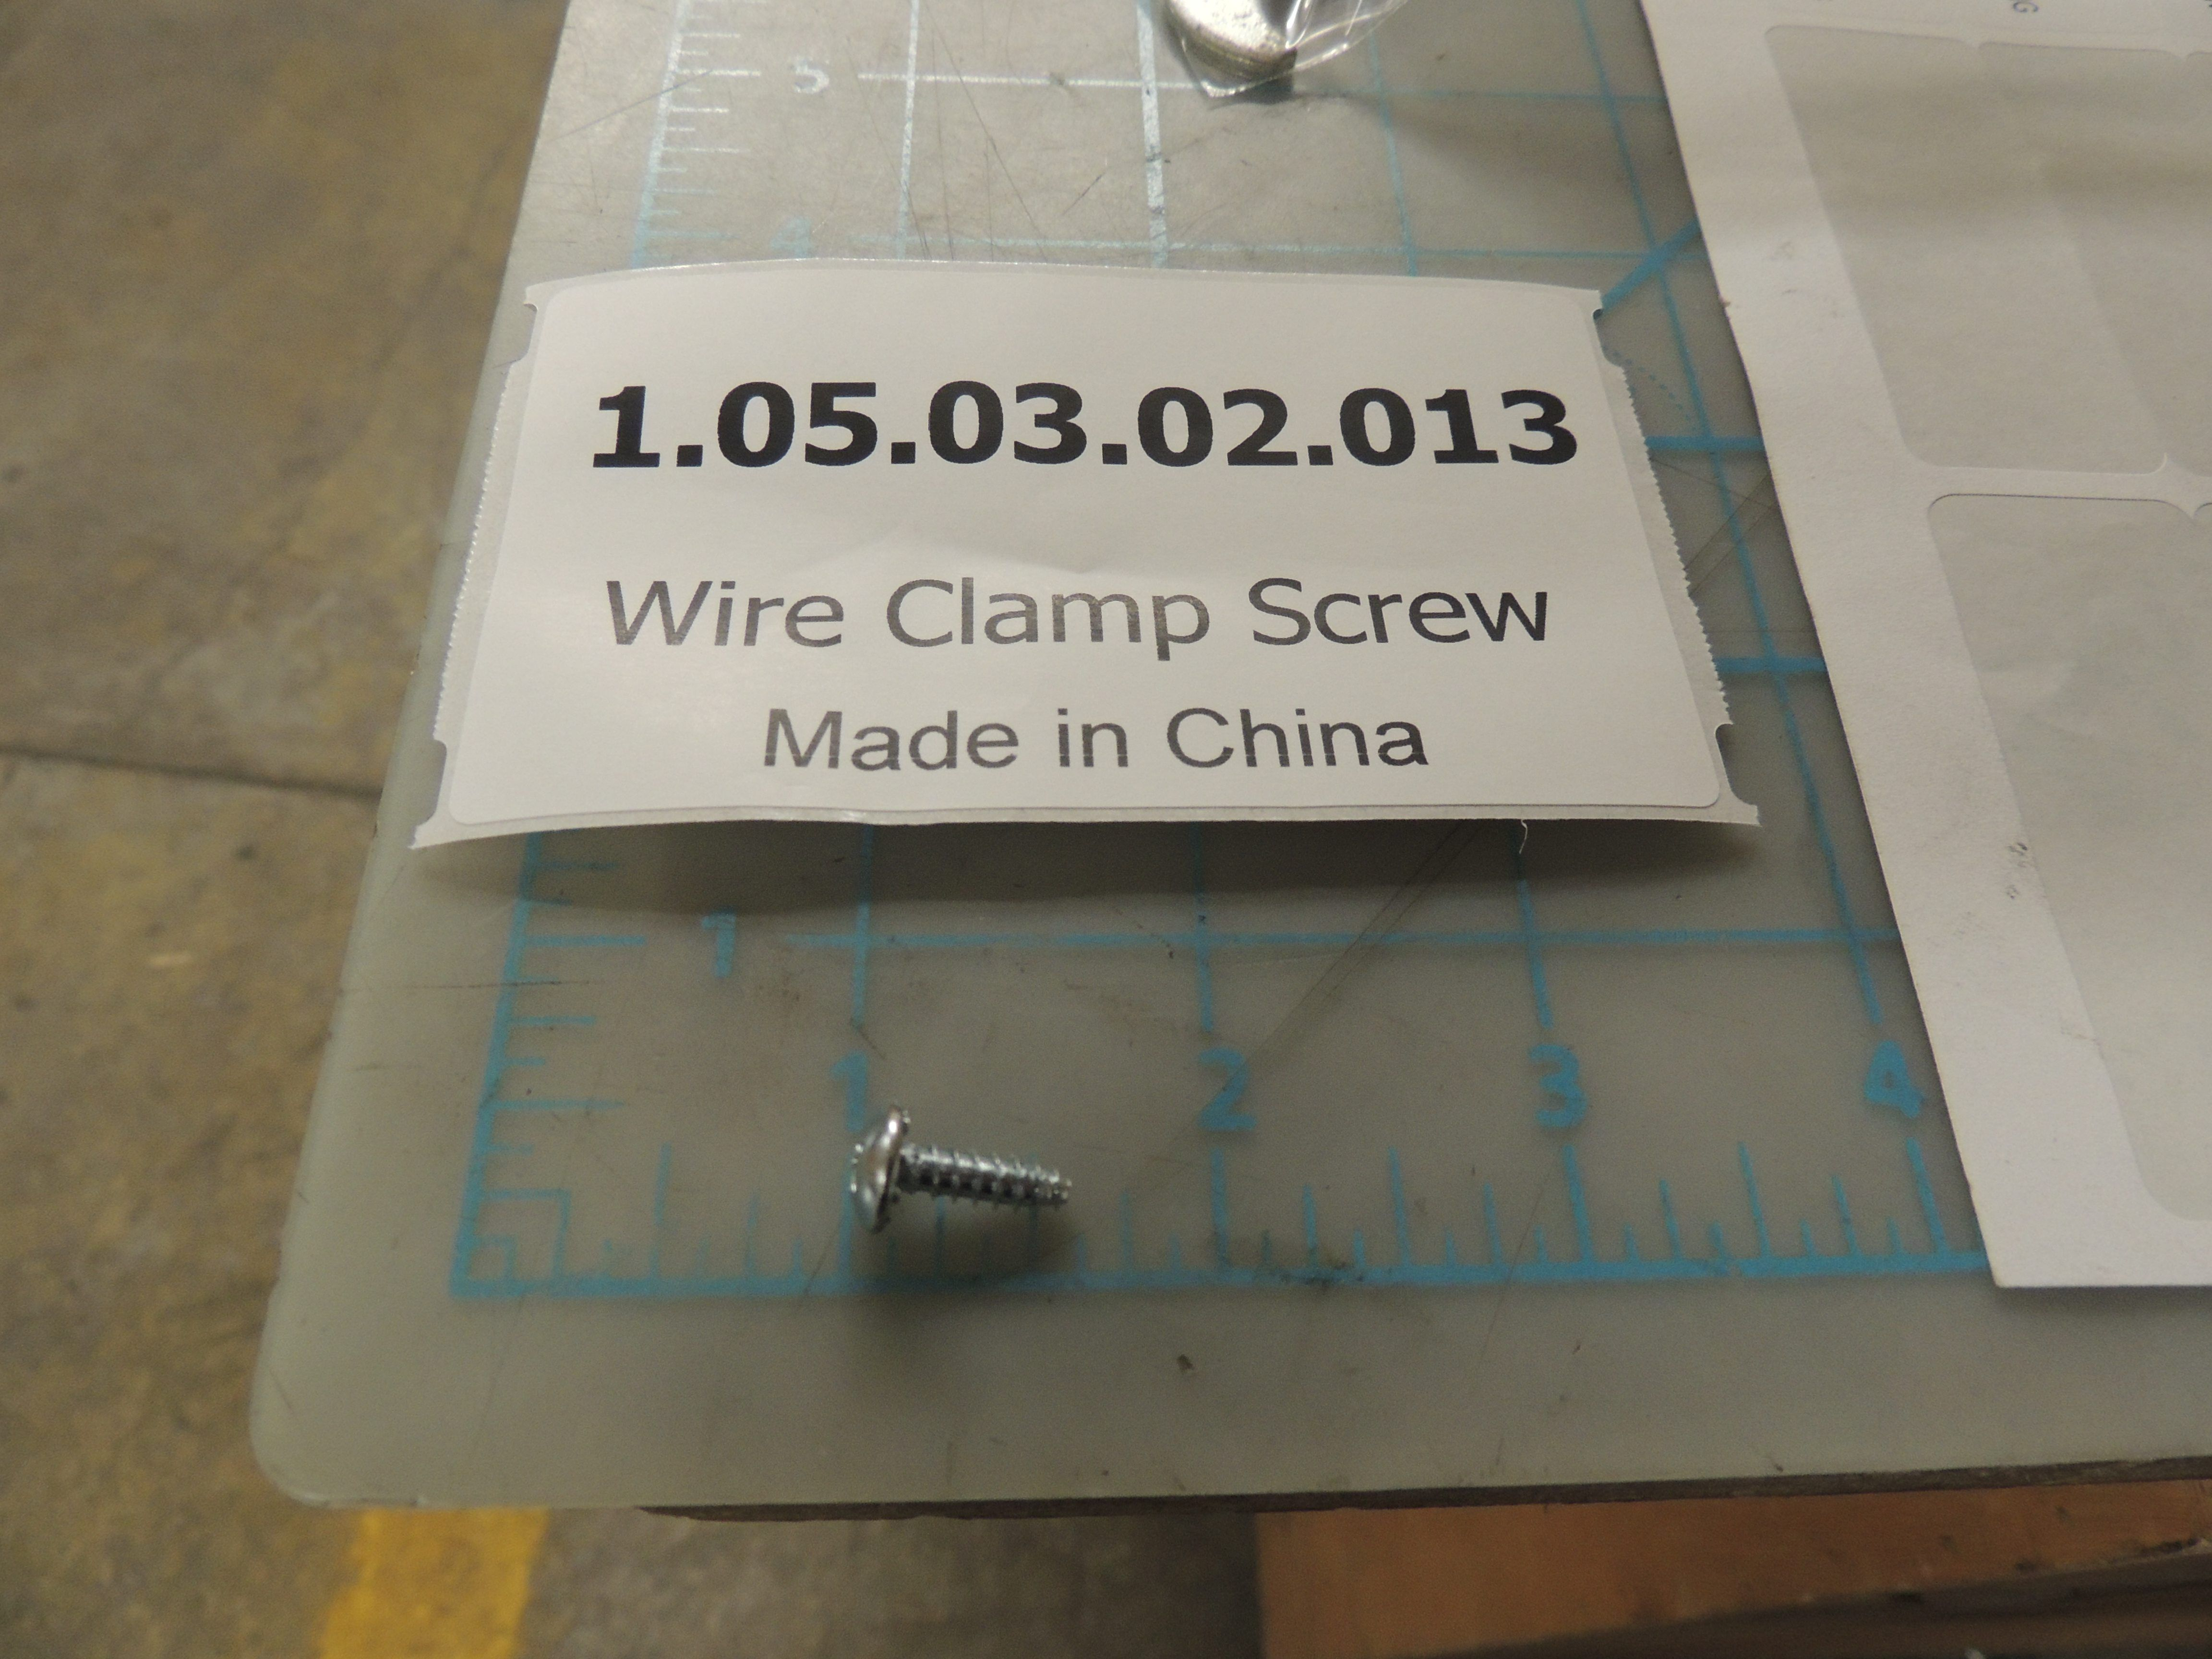 Wire Clamp Screw